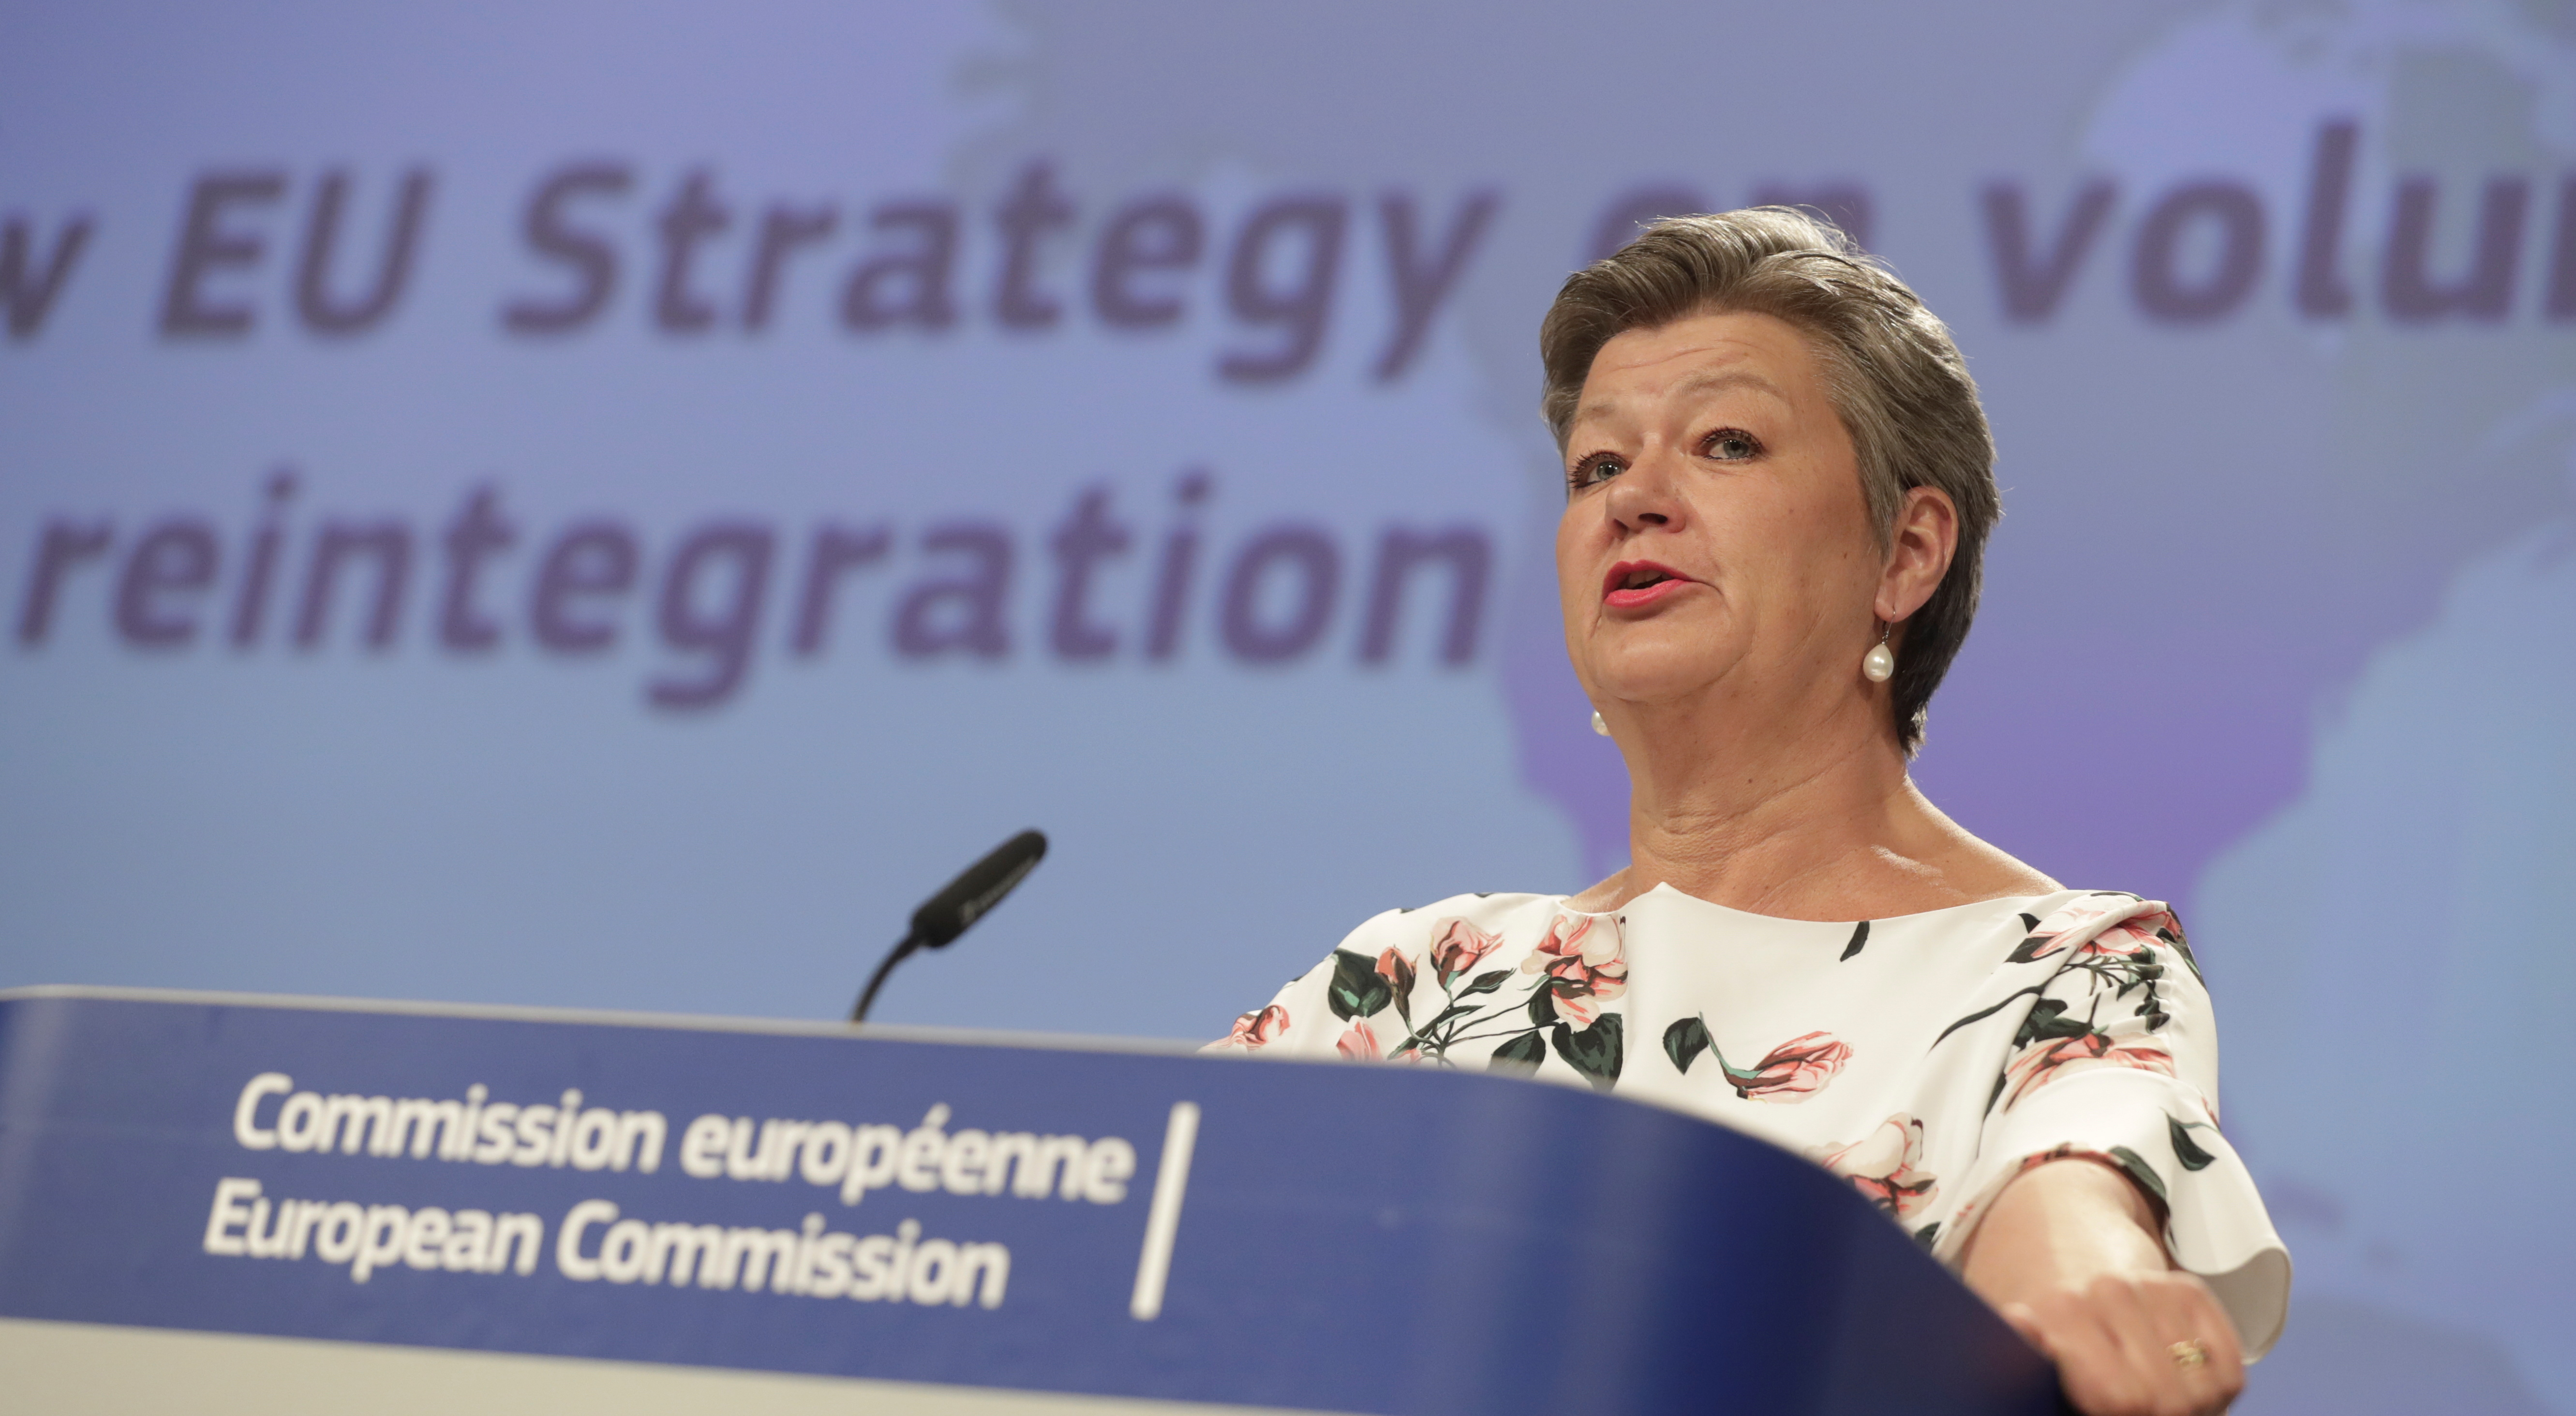 European Commissioner for Home Affairs, Ylva Johansson speaks during a press conference on EU Strategy on sustainable return and reintegration of illegal migrants in Europe, in Brussels, Belgium, April 27, 2021. Stephanie Lecocq/Pool via REUTERS